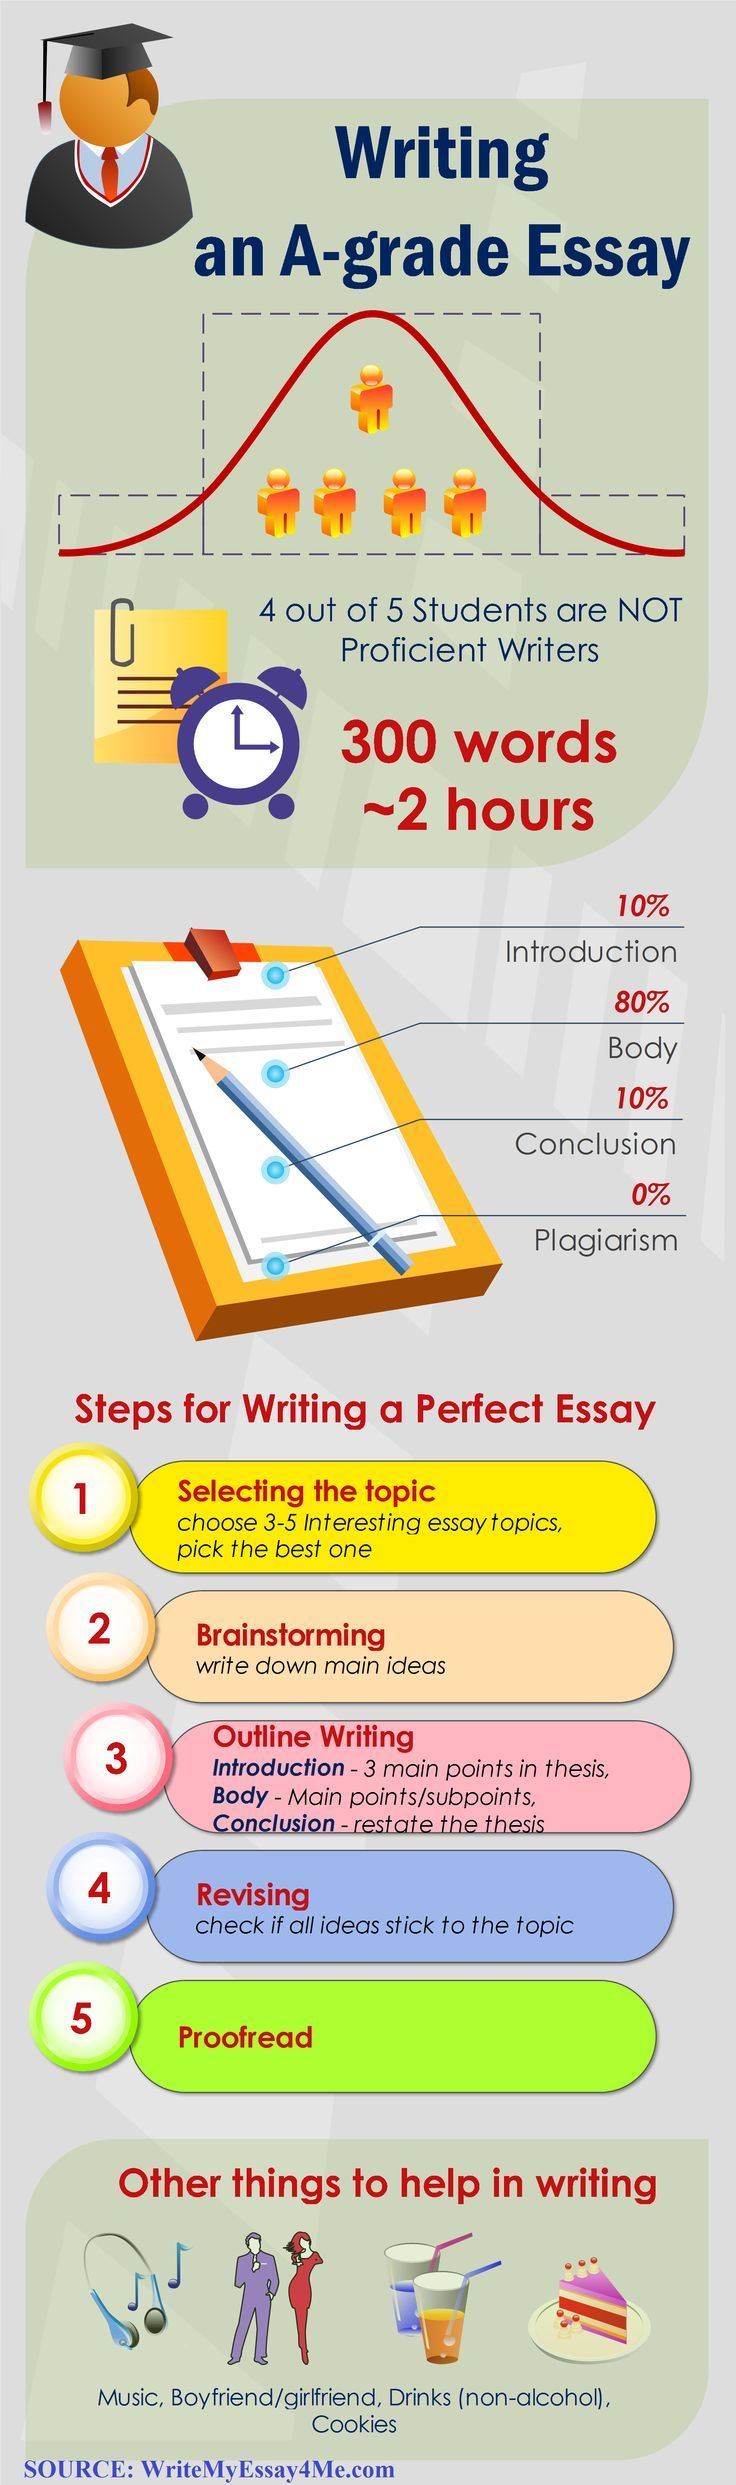 best images about essay writing writing an essay it is of my opinion no offense that being in a r tic relationship anyone cannot be concomitant receiving high grades and making great essays